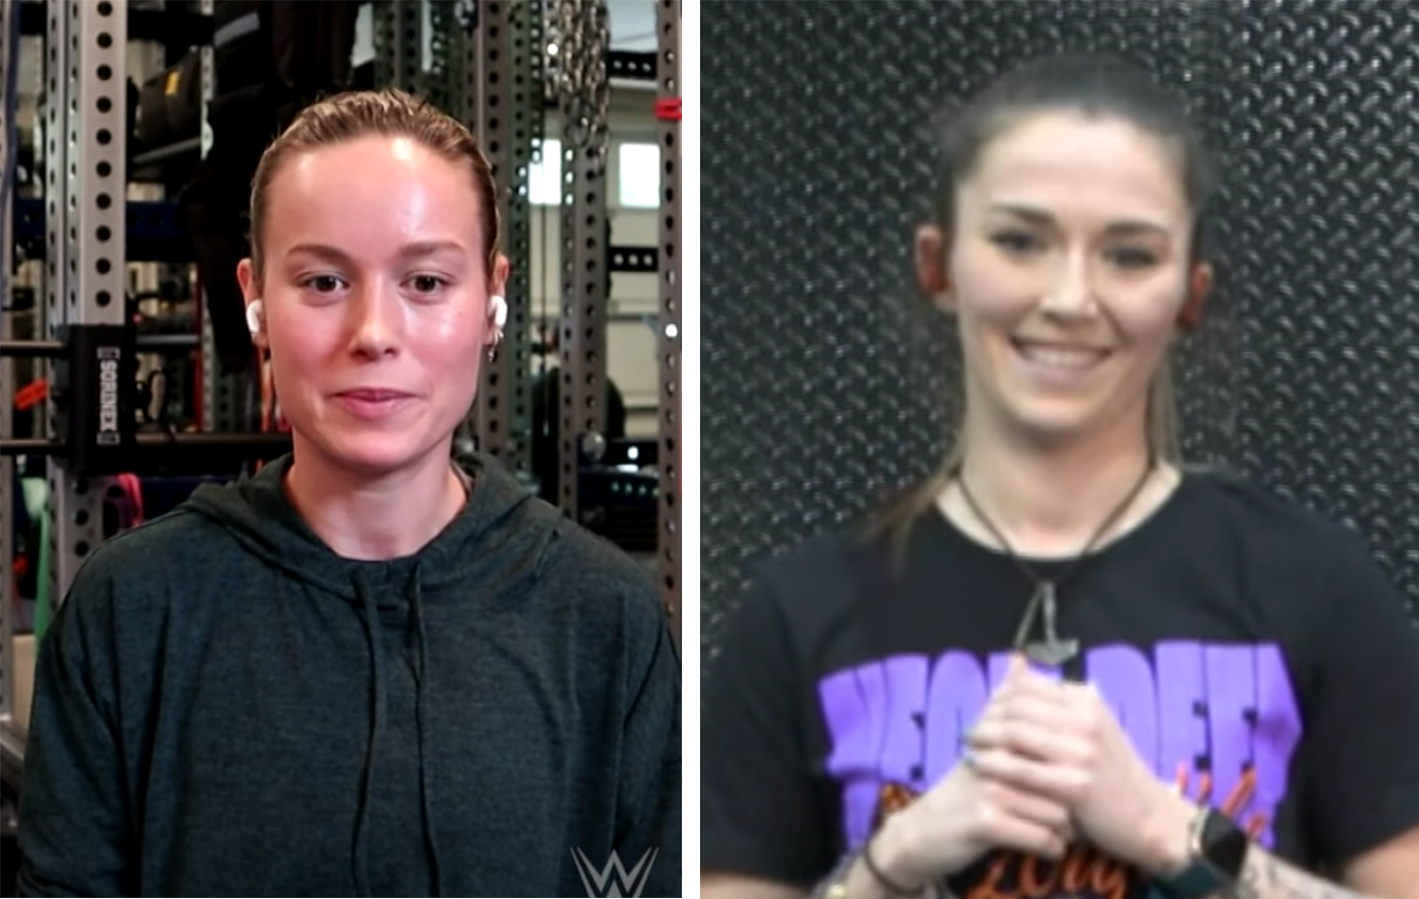 Captain Marvel actress Brie Larson trained with Tegan Knox of the WWE on YouTube